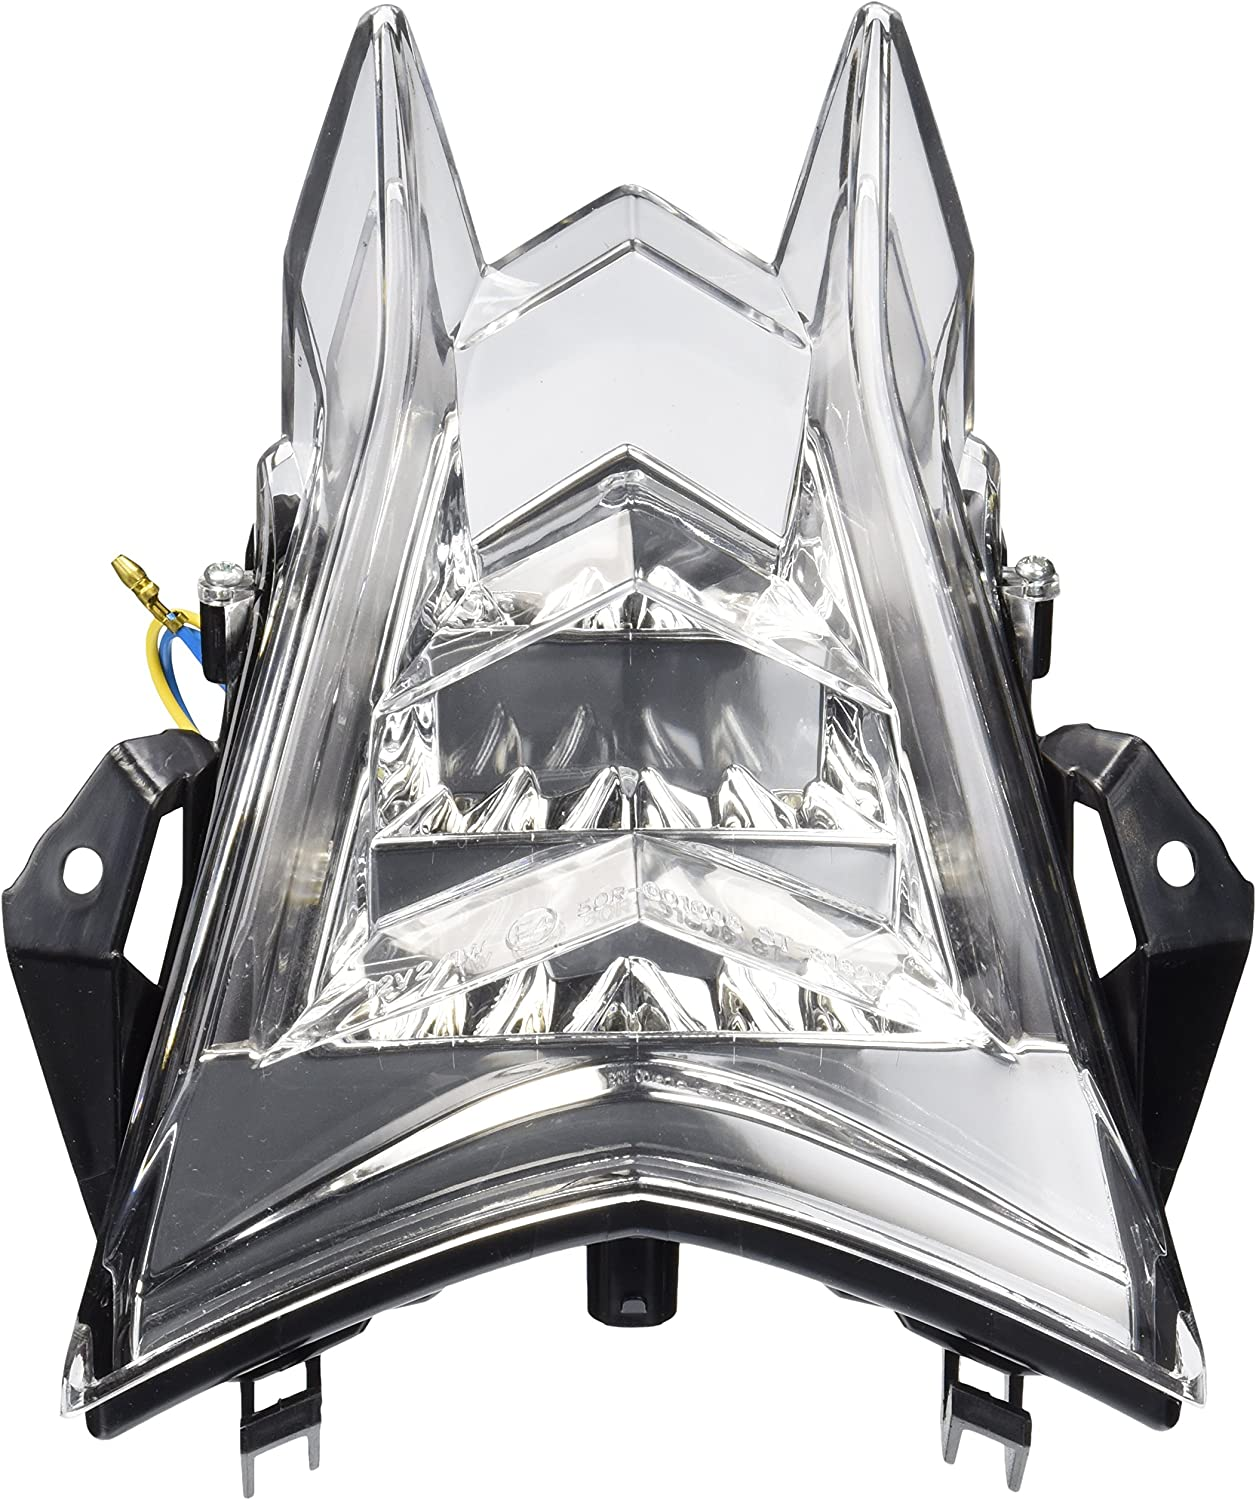 Vortex TL140 Clear LED Integrated Tail Light